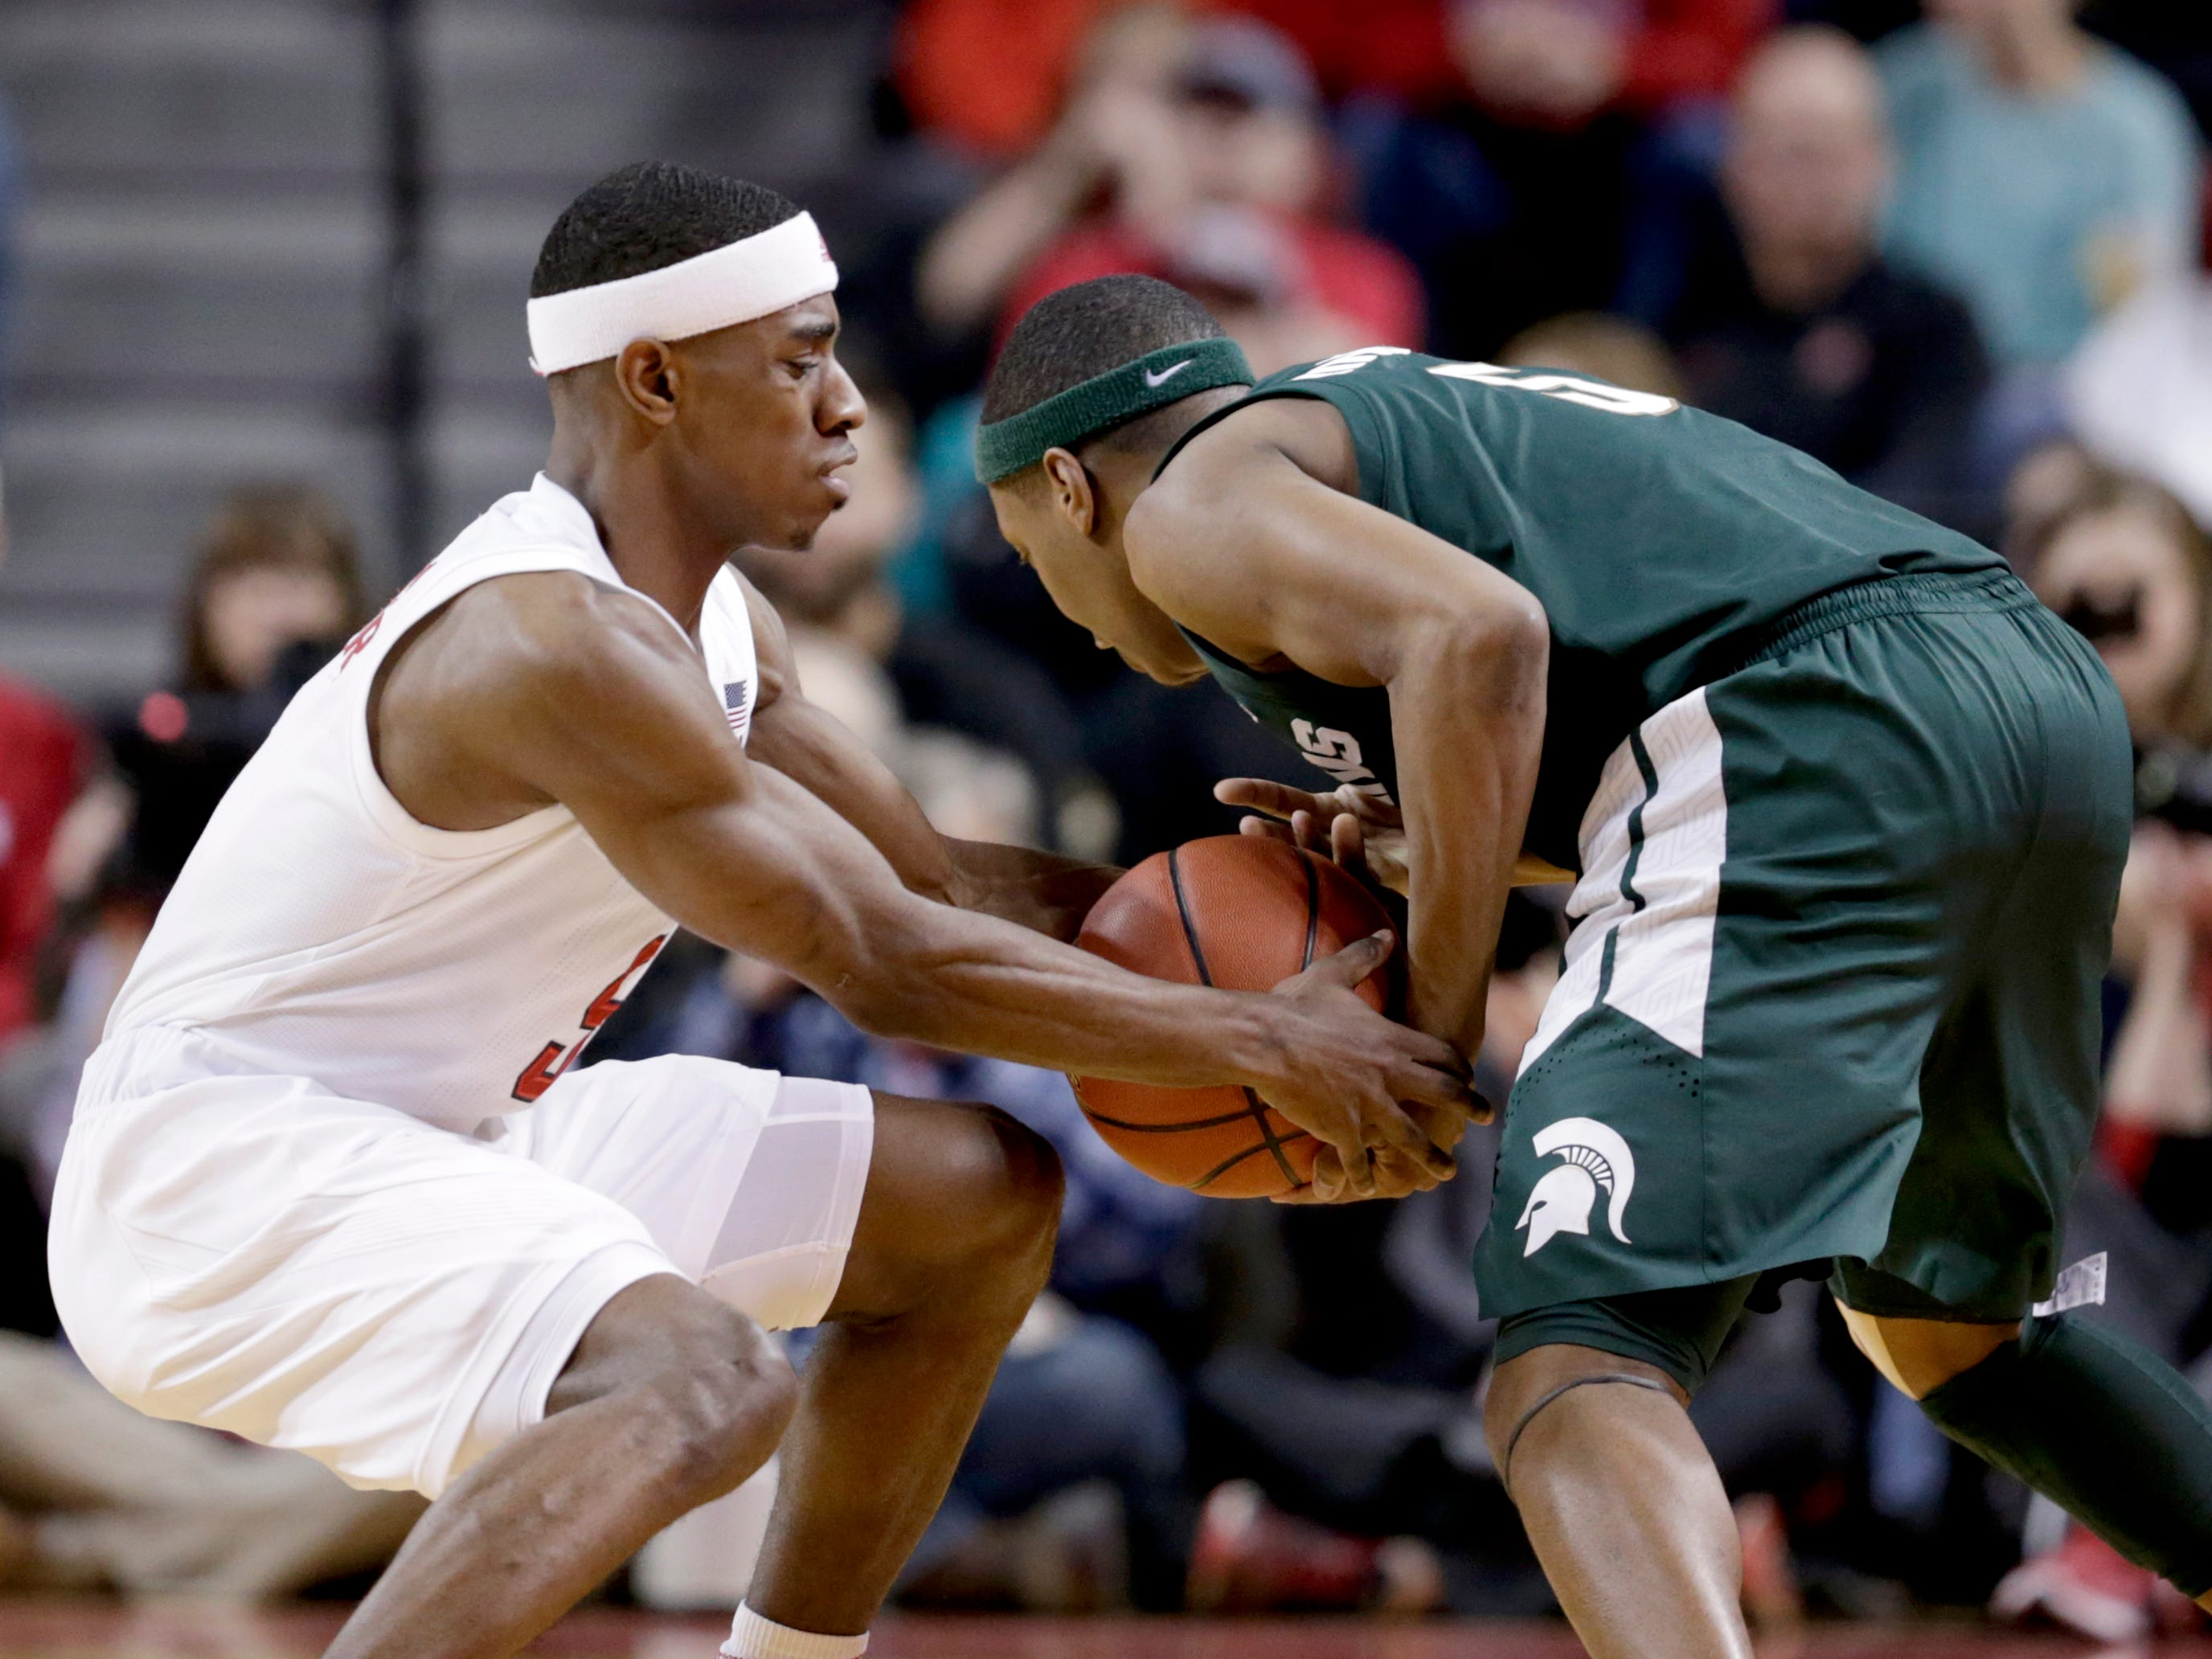 Nebraska's Glynn Watson Jr., left, steals the ball from Michigan State's Cassius Winston (5) during the first half of an NCAA college basketball game in Lincoln, Neb., Thursday, Jan. 17, 2019.